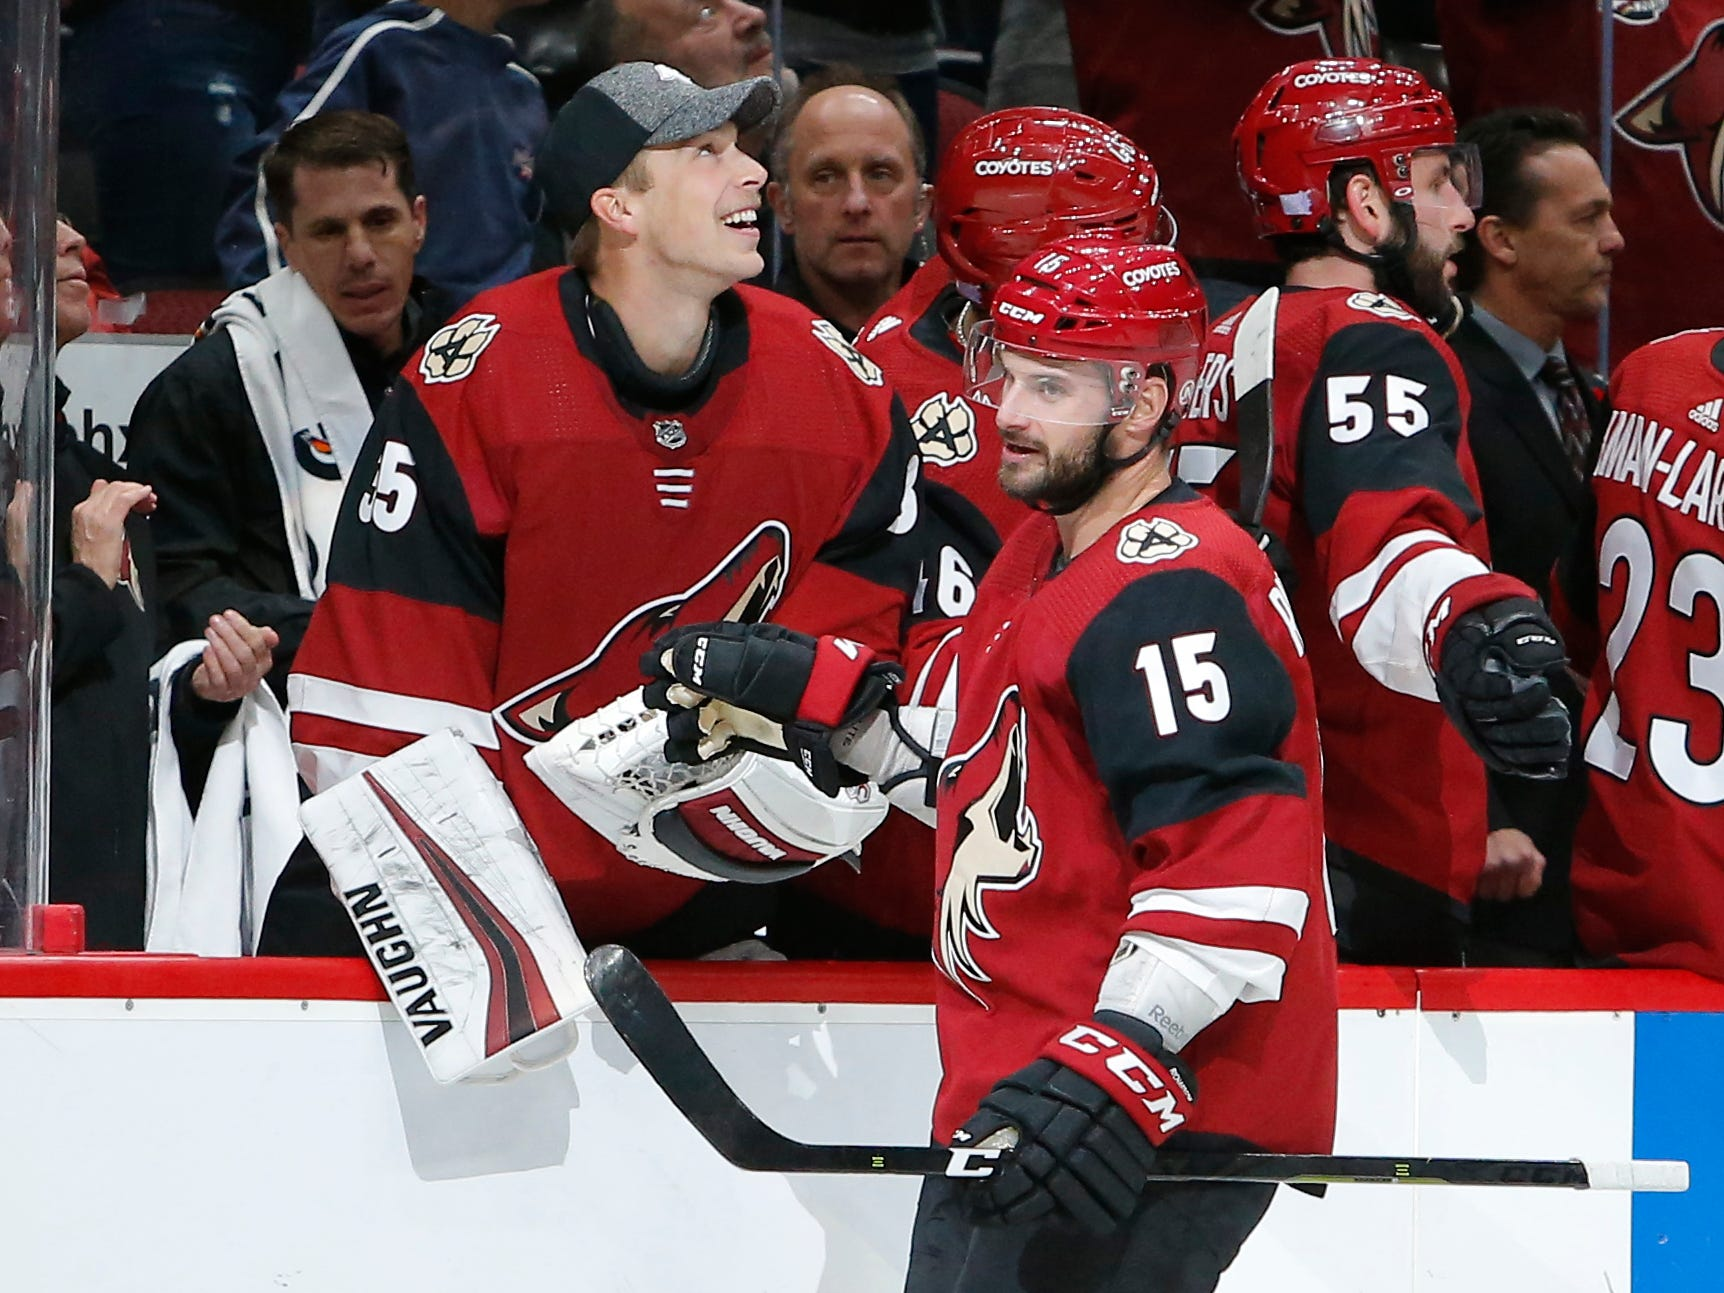 Arizona Coyotes center Brad Richardson (15) celebrates with teammates after scoring a goal against the Carolina Hurricanes during the first period of an NHL hockey game Friday, Nov. 2, 2018, in Glendale, Ariz. (AP Photo/Rick Scuteri)